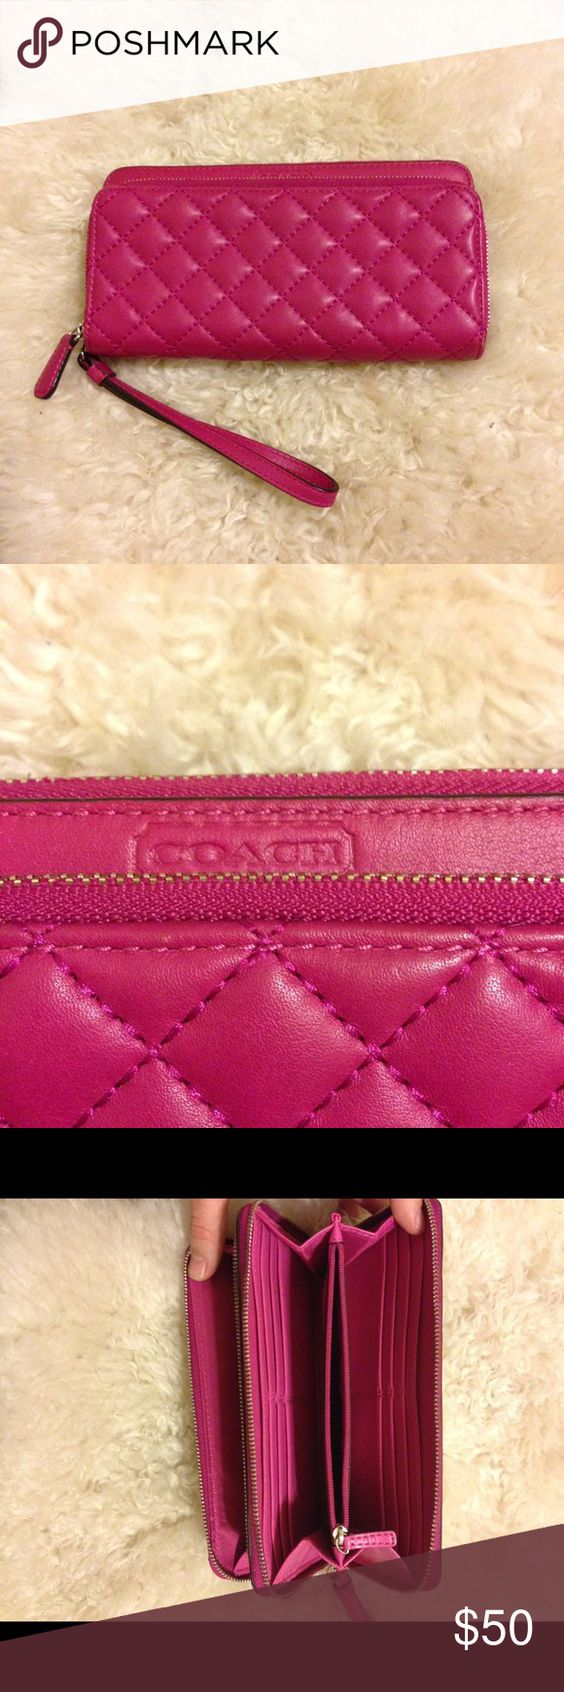 Coach Park Quilt Leather Zip Wristlet Wallet VGUC authentic coach wallet with little to no wear and tear. Top zipper is sensitive and does close but need to be careful. Price reflects issue. All other zippers work great! And inside is clean with no stains looks new. Coach Bags Clutches & Wristlets